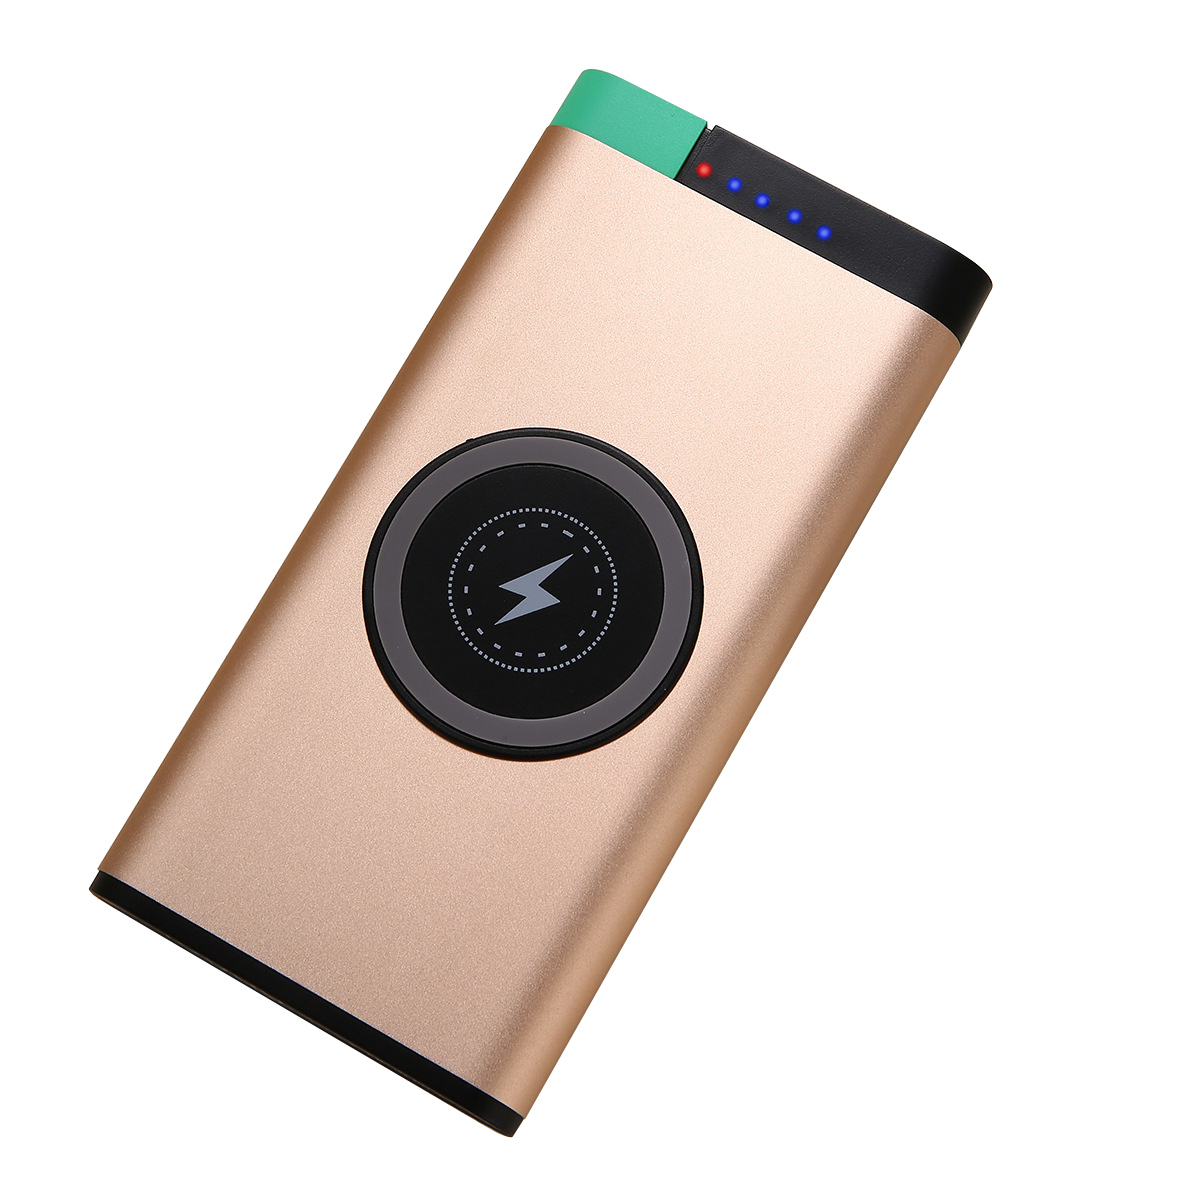 2 port usb fast charging latest wireless charger power bank 10000mah